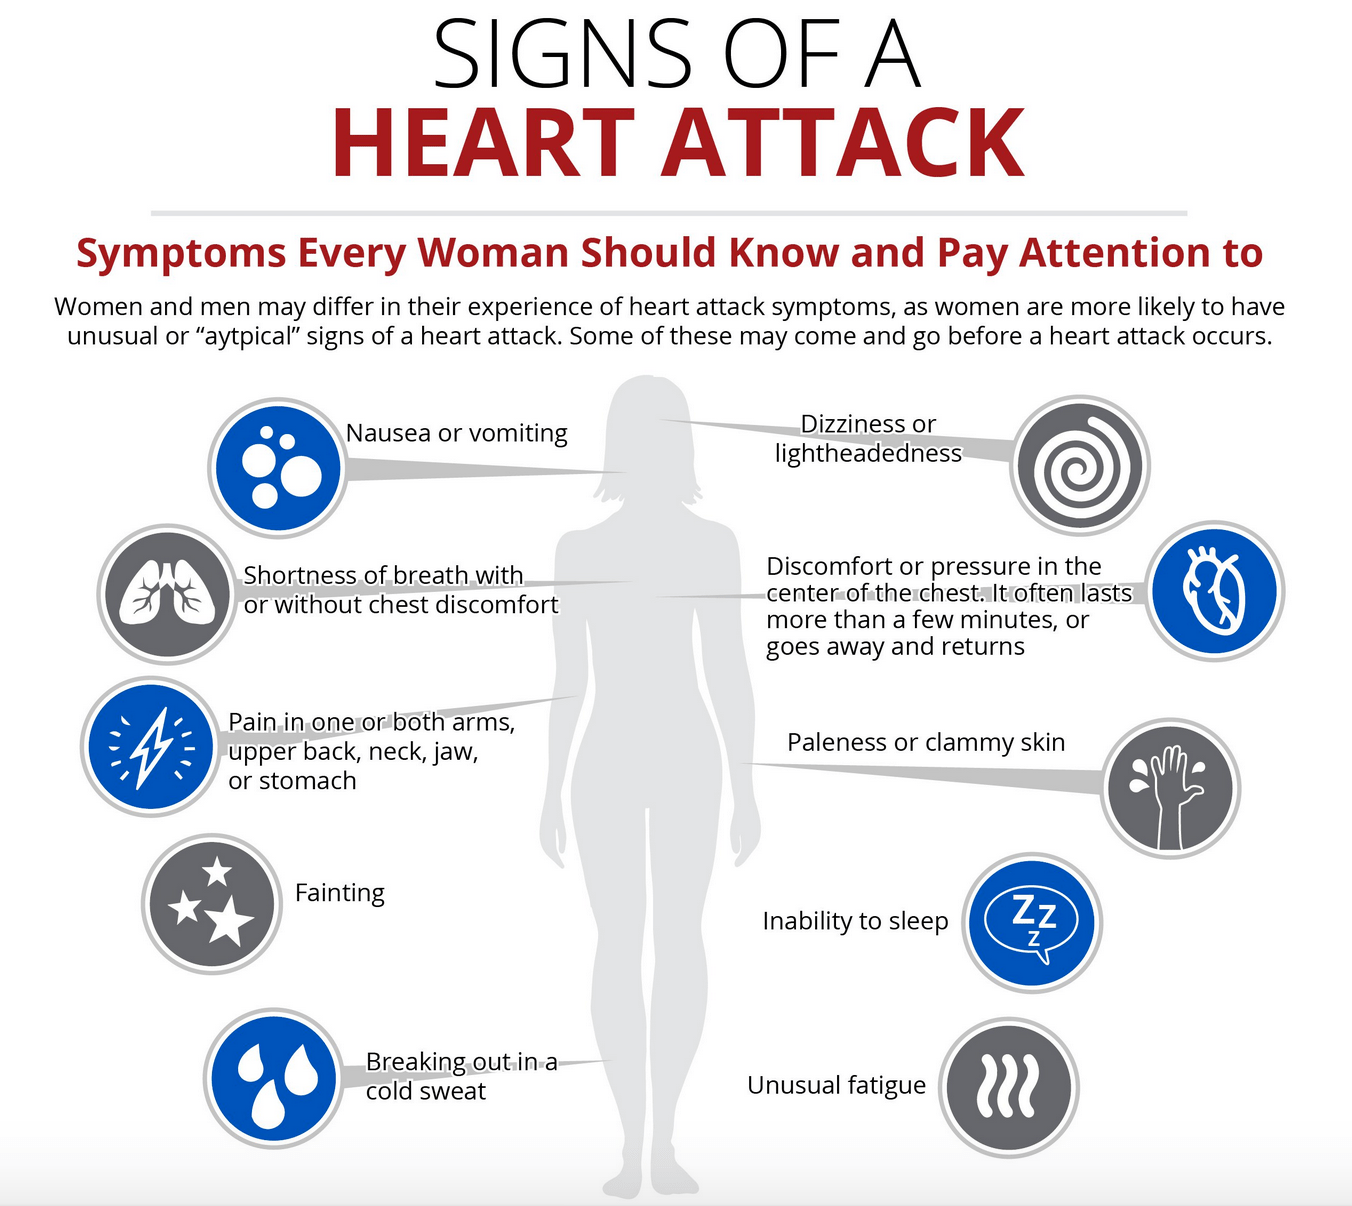 Why Does Your Arm Hurt During A Heart